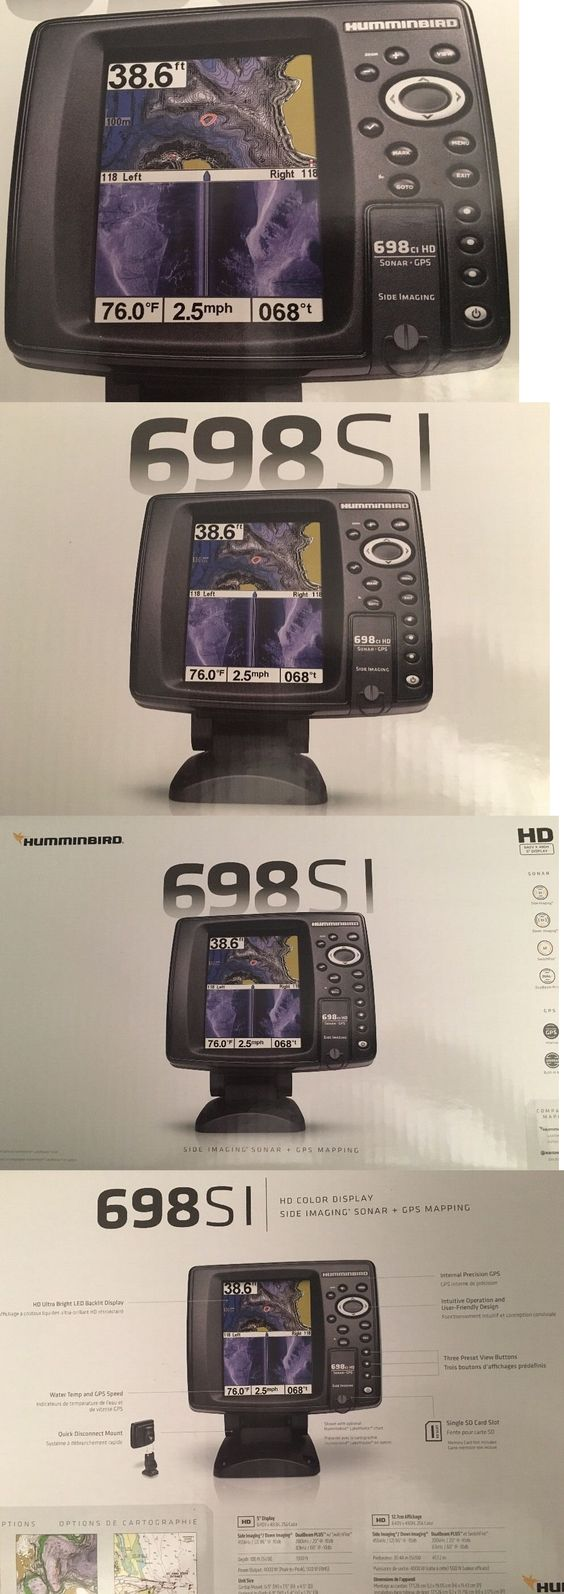 fishfinders 29723: brand new humminbird 698ci hd si gps sonar, Fish Finder